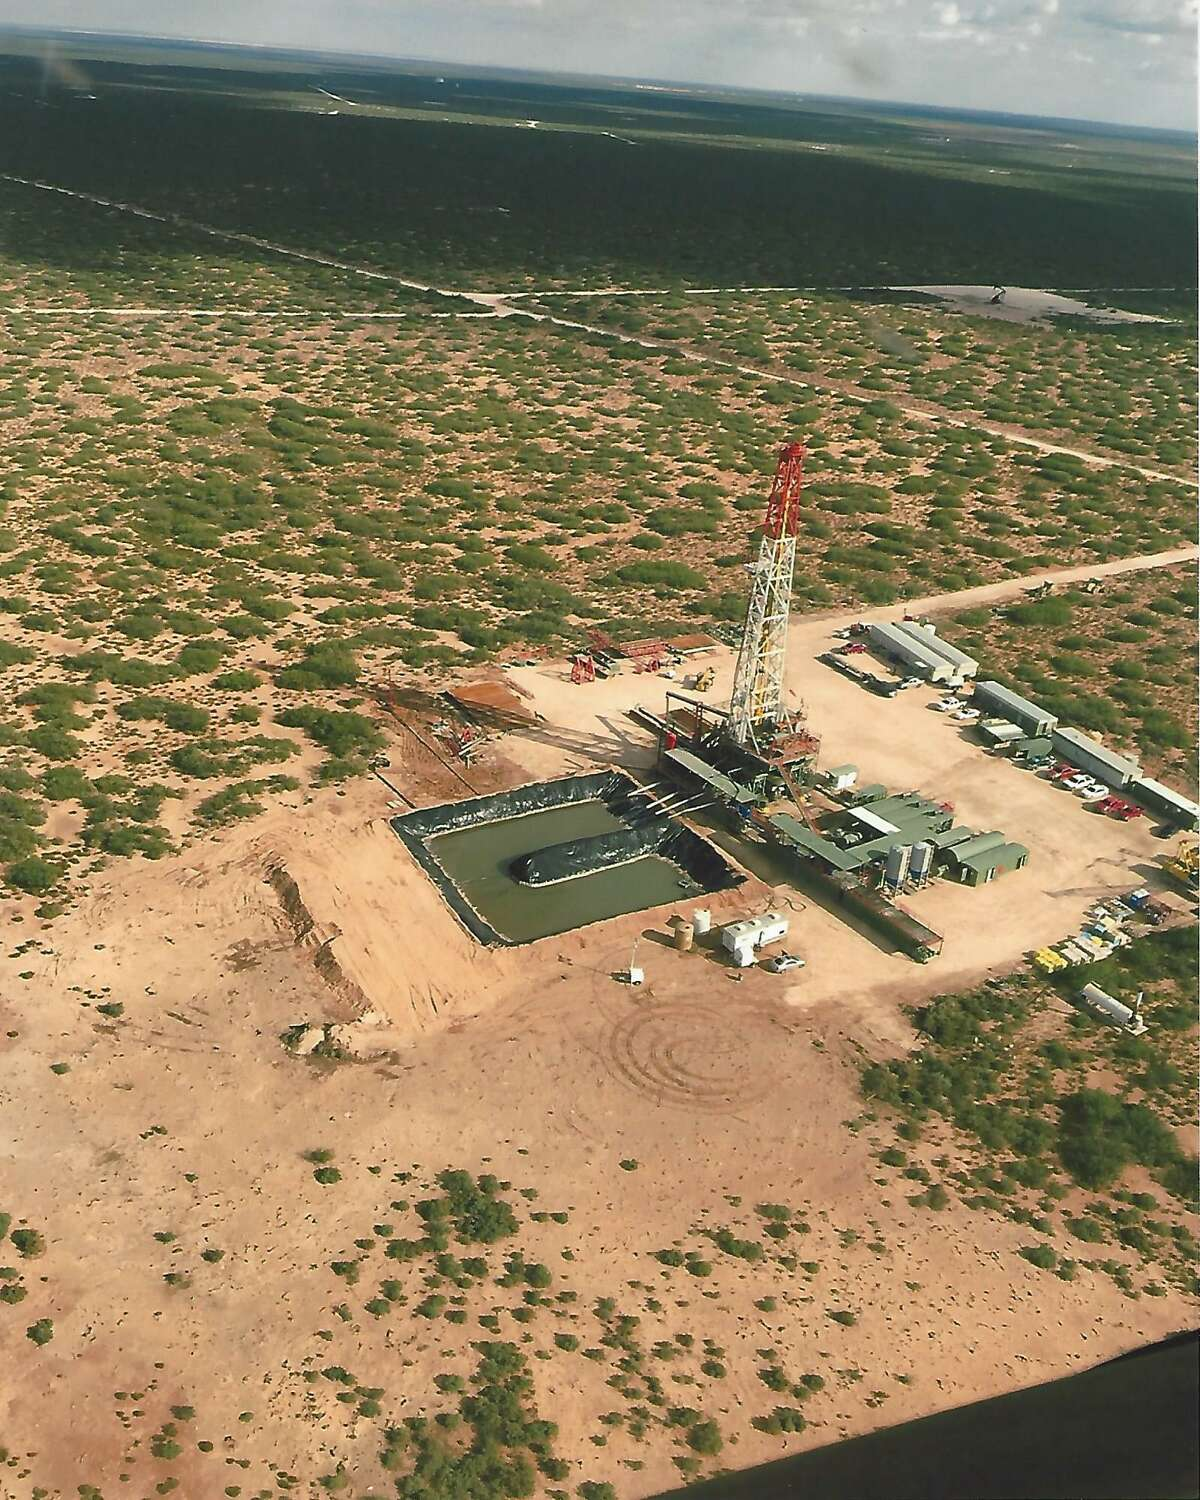 Lilis Energy, Inc. is an independent oil and gas exploration and production company that operates in the Permian ?'s Delaware Basin. Seen here is Lilis' Bison #1H well which started producing oil on Jan 19, 2017